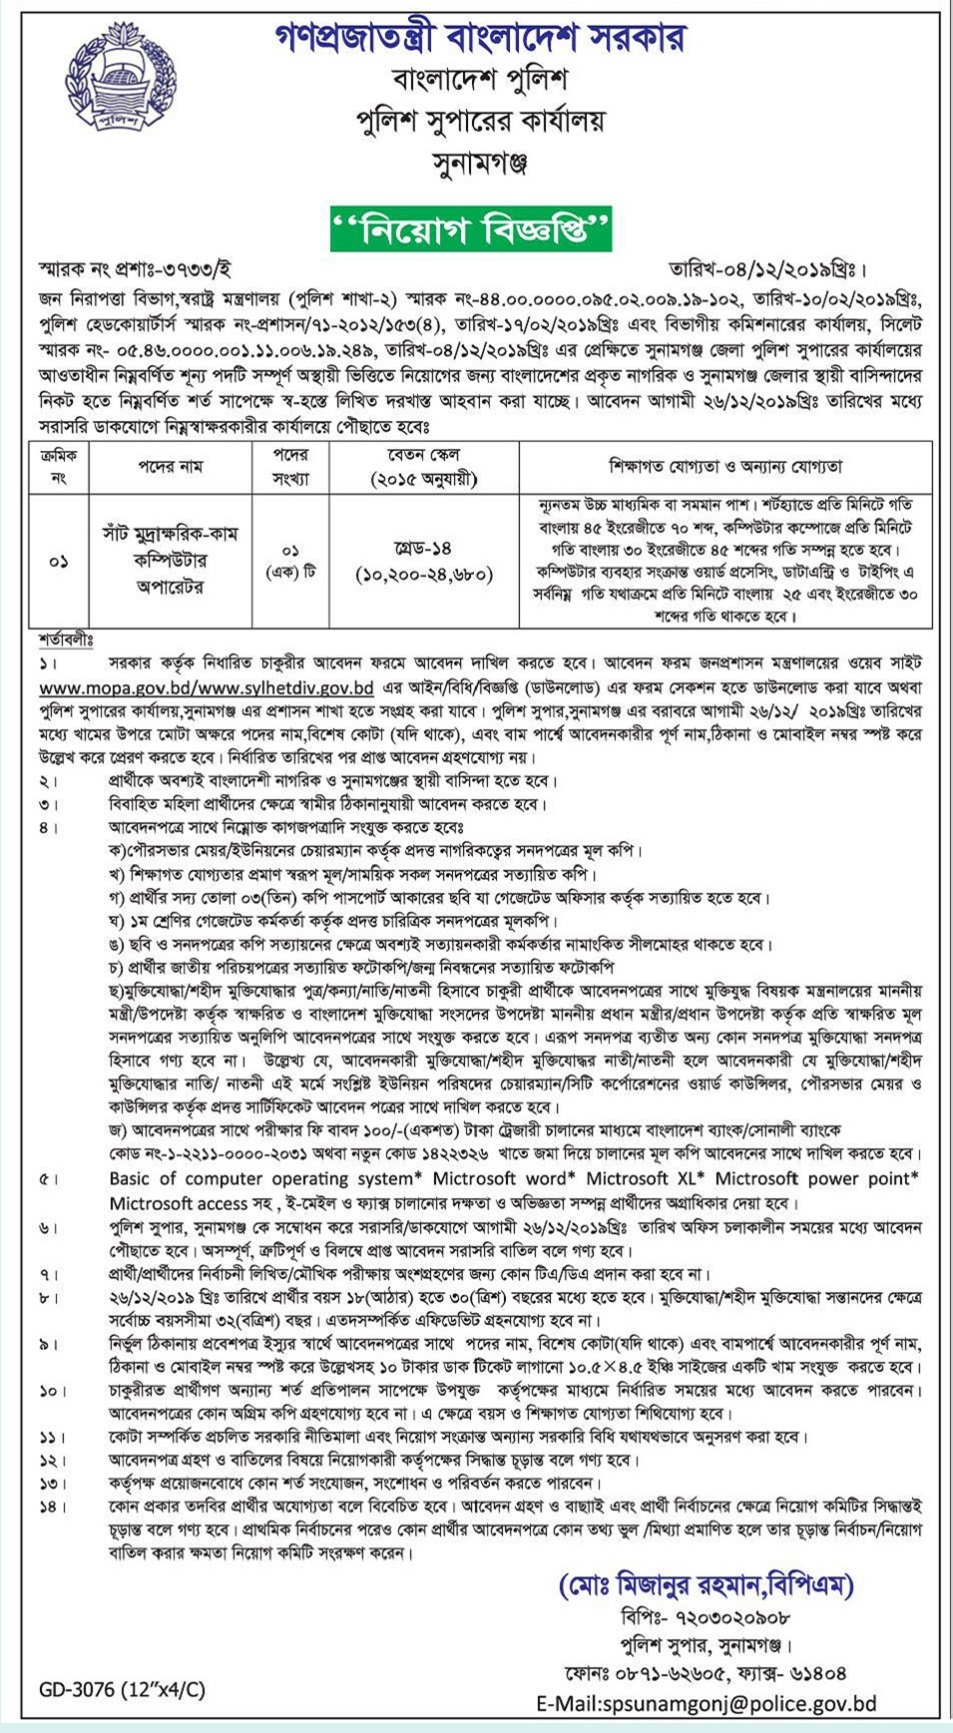 Office of Superintendent of Police Job Circular 2019